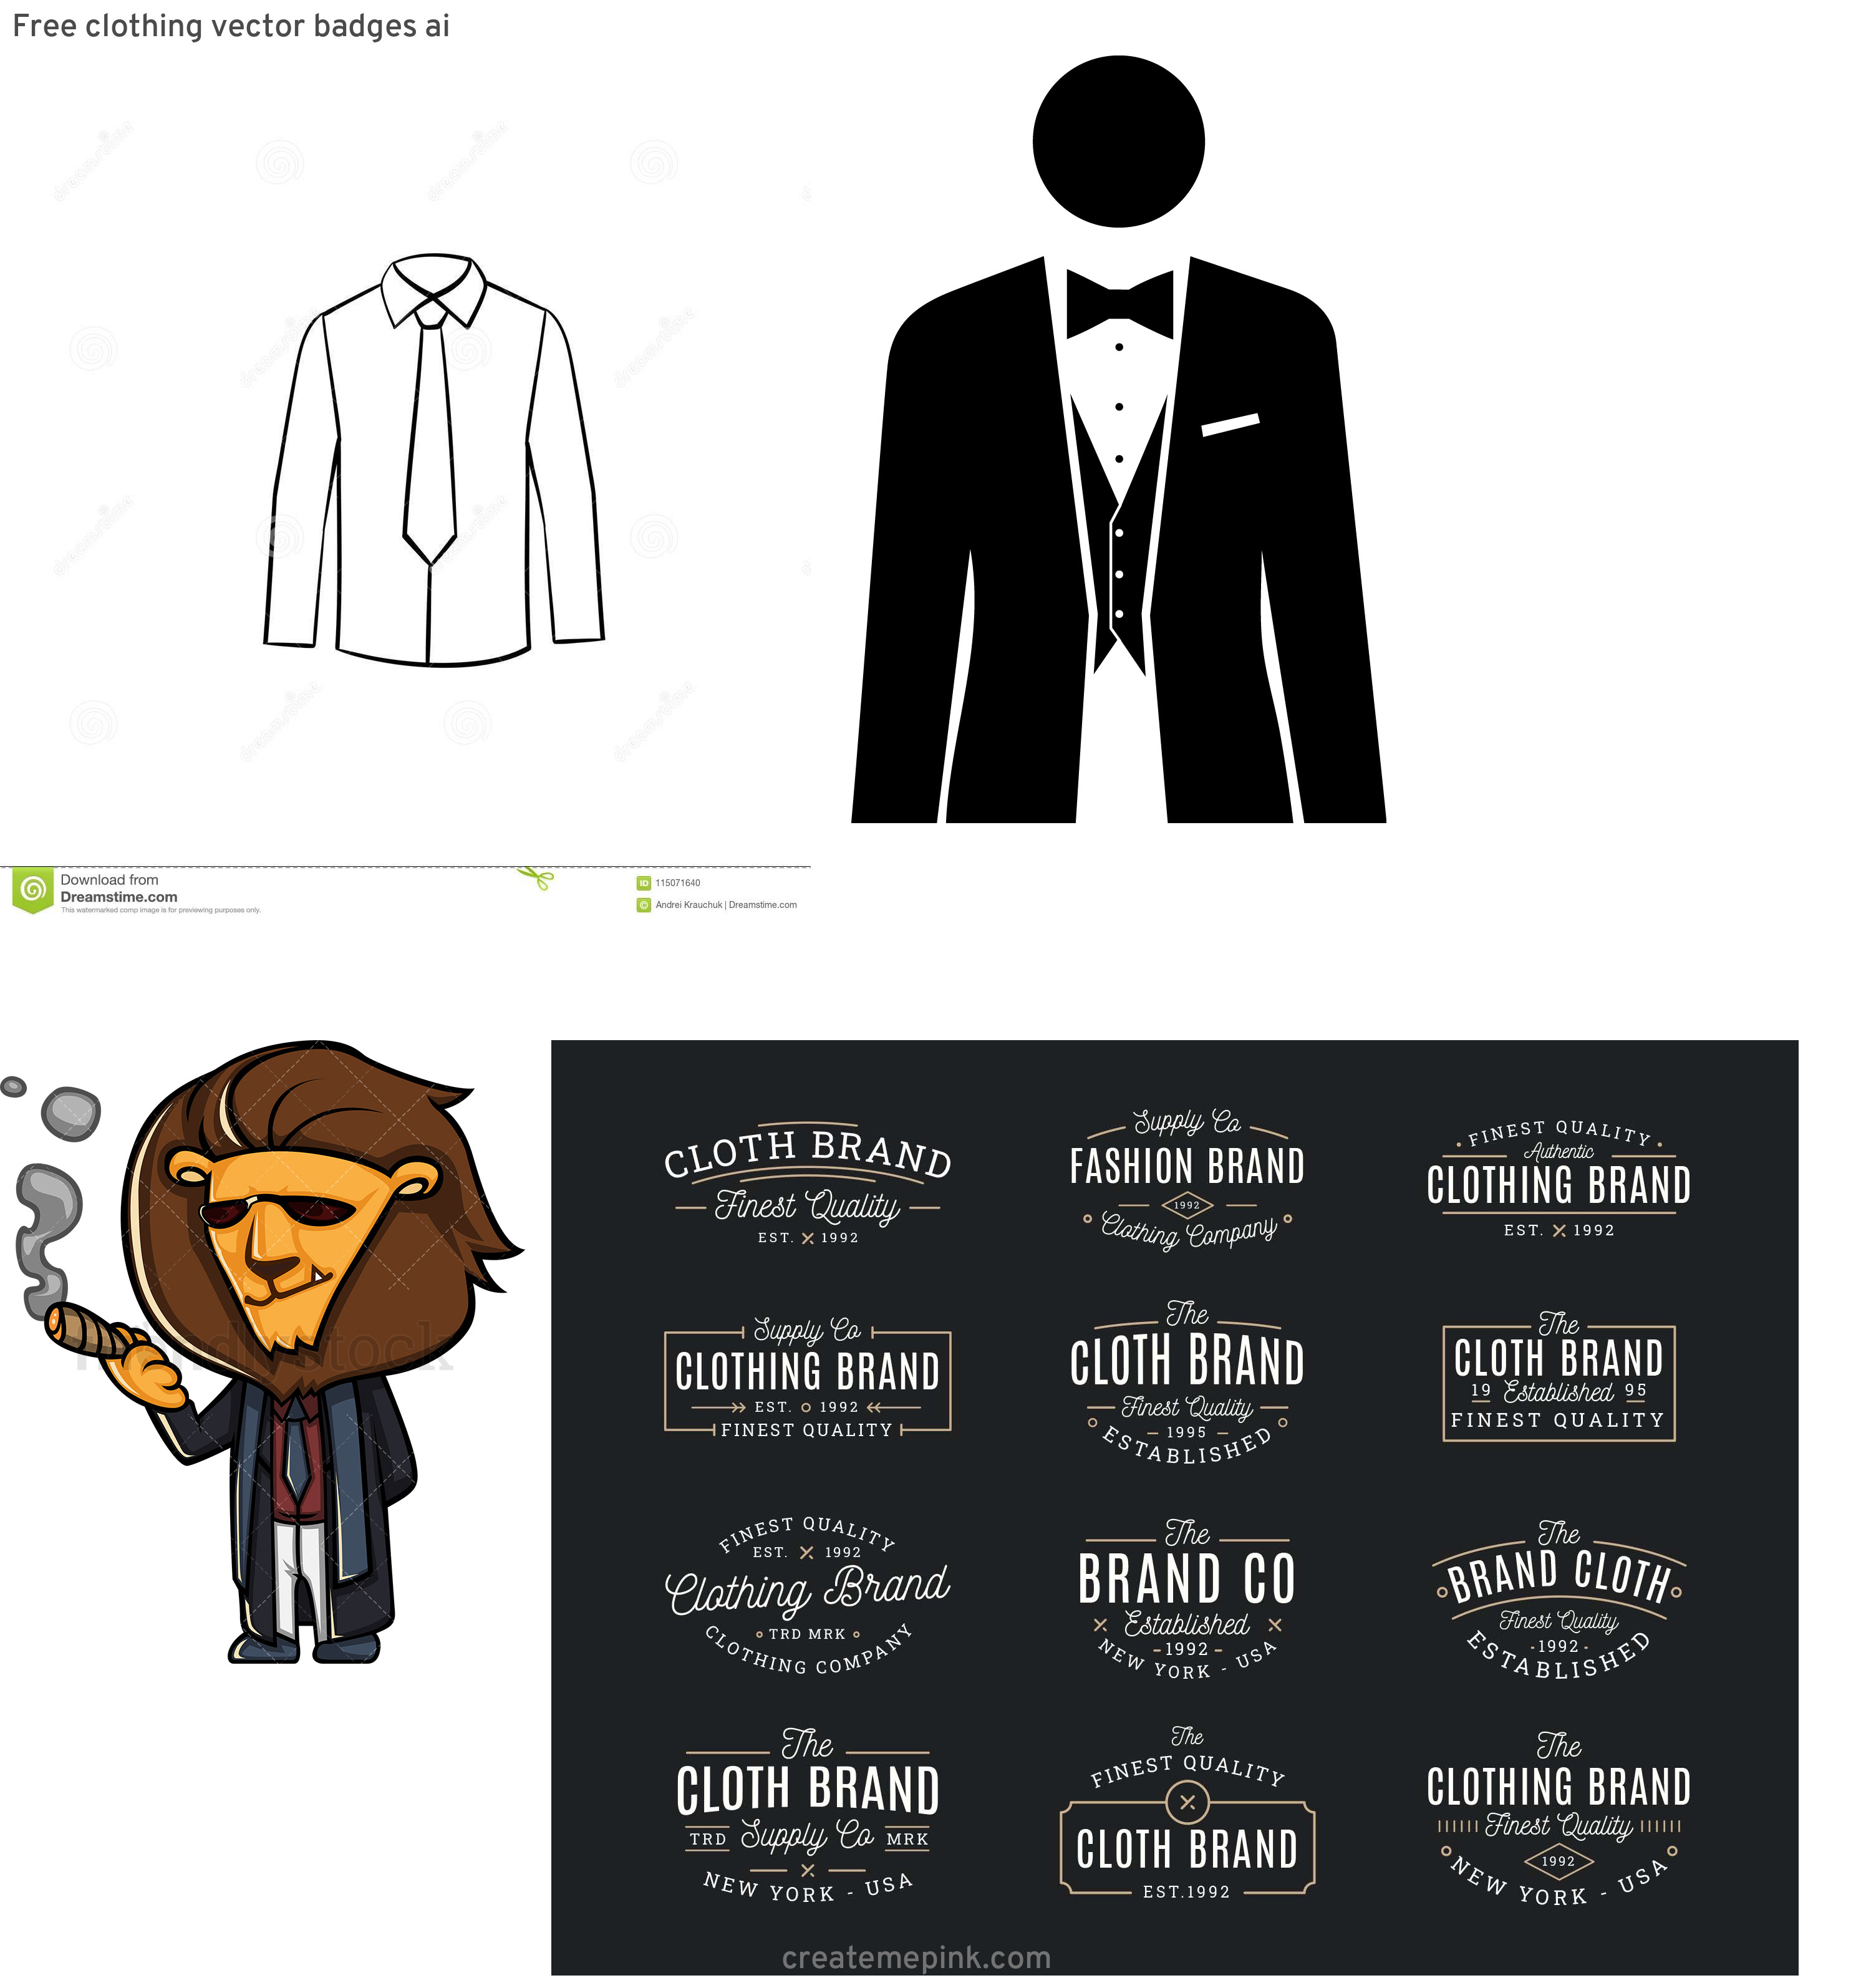 Vector Business Attire: Free Clothing Vector Badges Ai